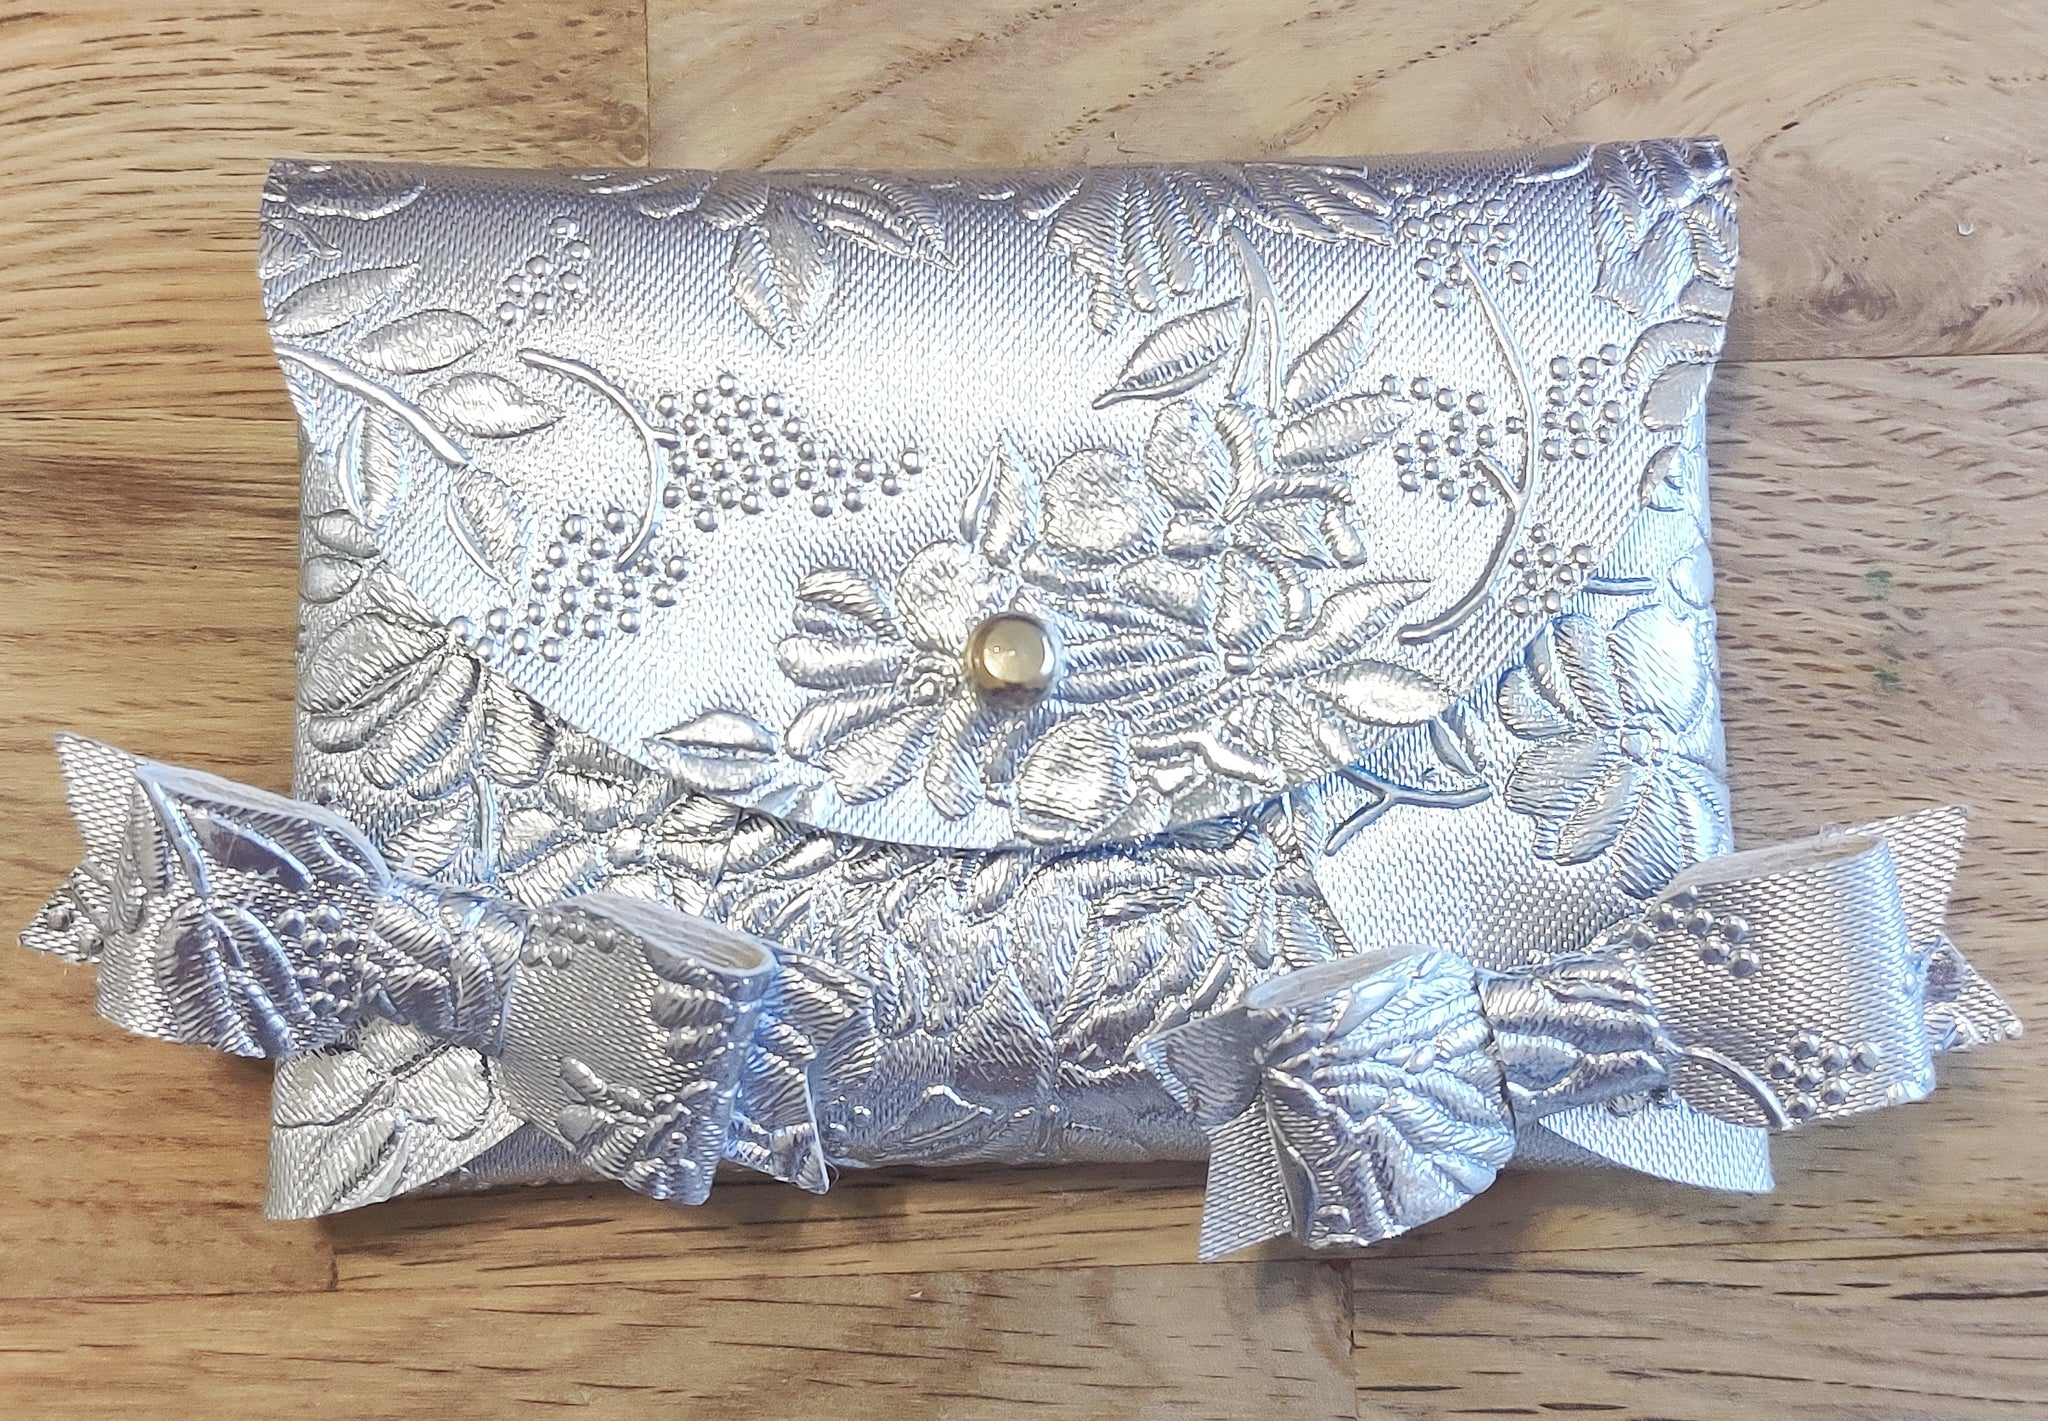 Silver Embossed Purse & Mini Bows